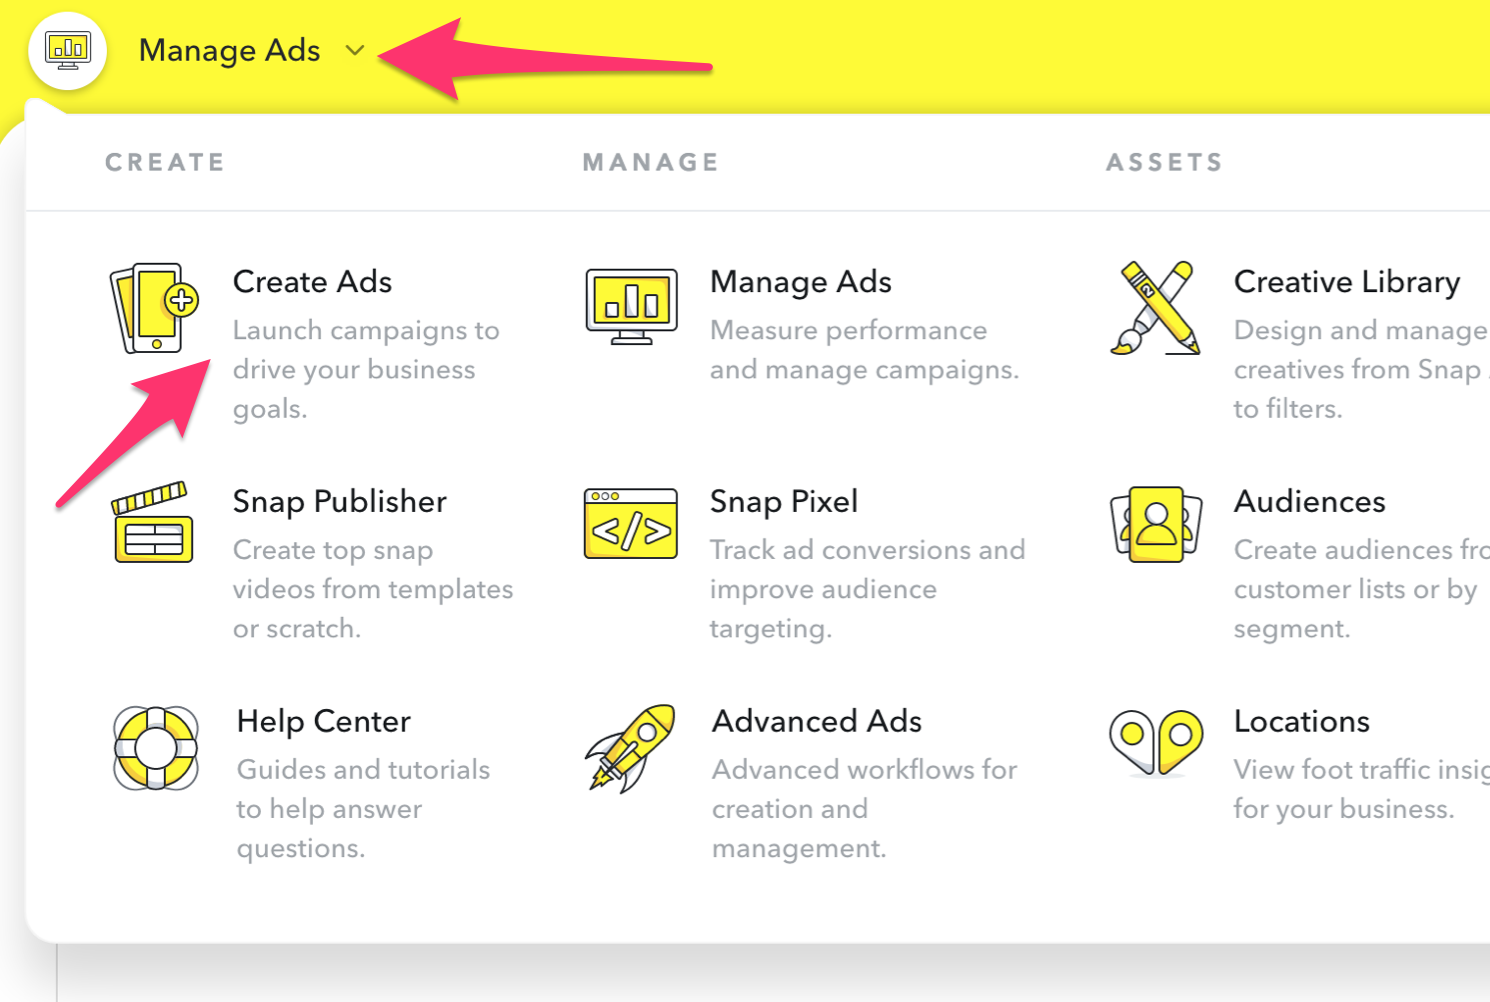 Create an ad in Snapchat